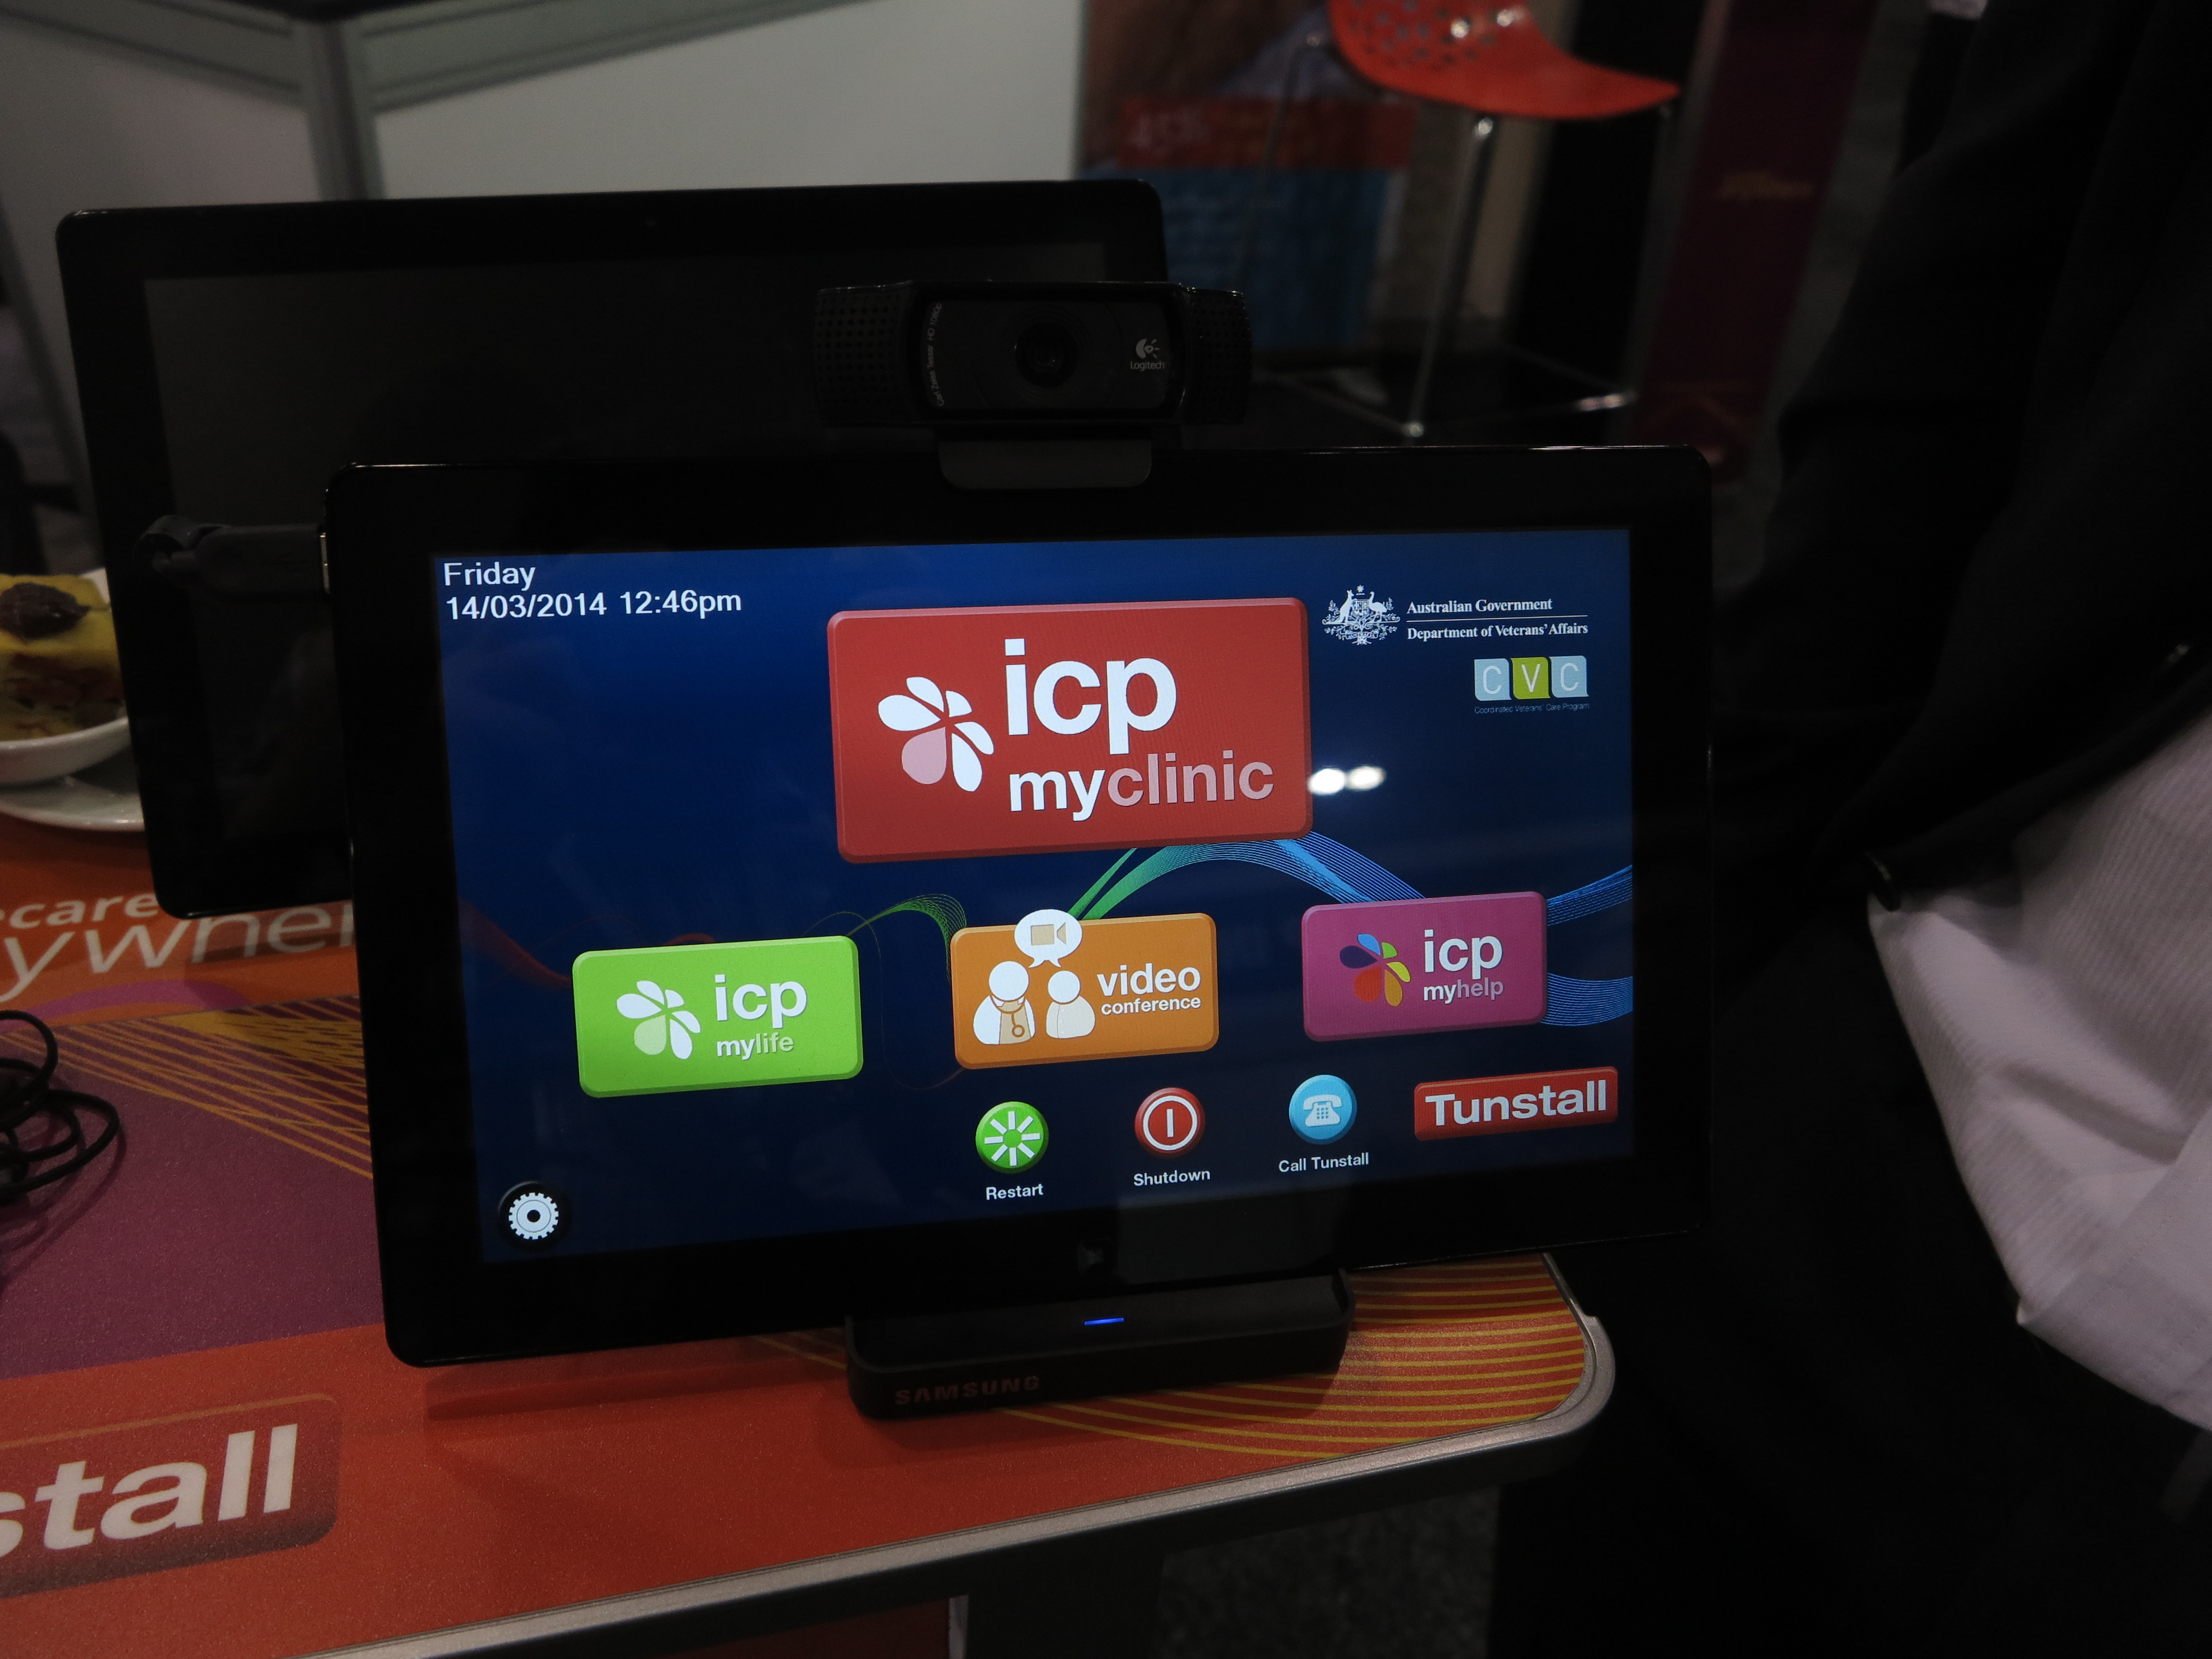 tablet computer used as part of in-home telemedicine setup